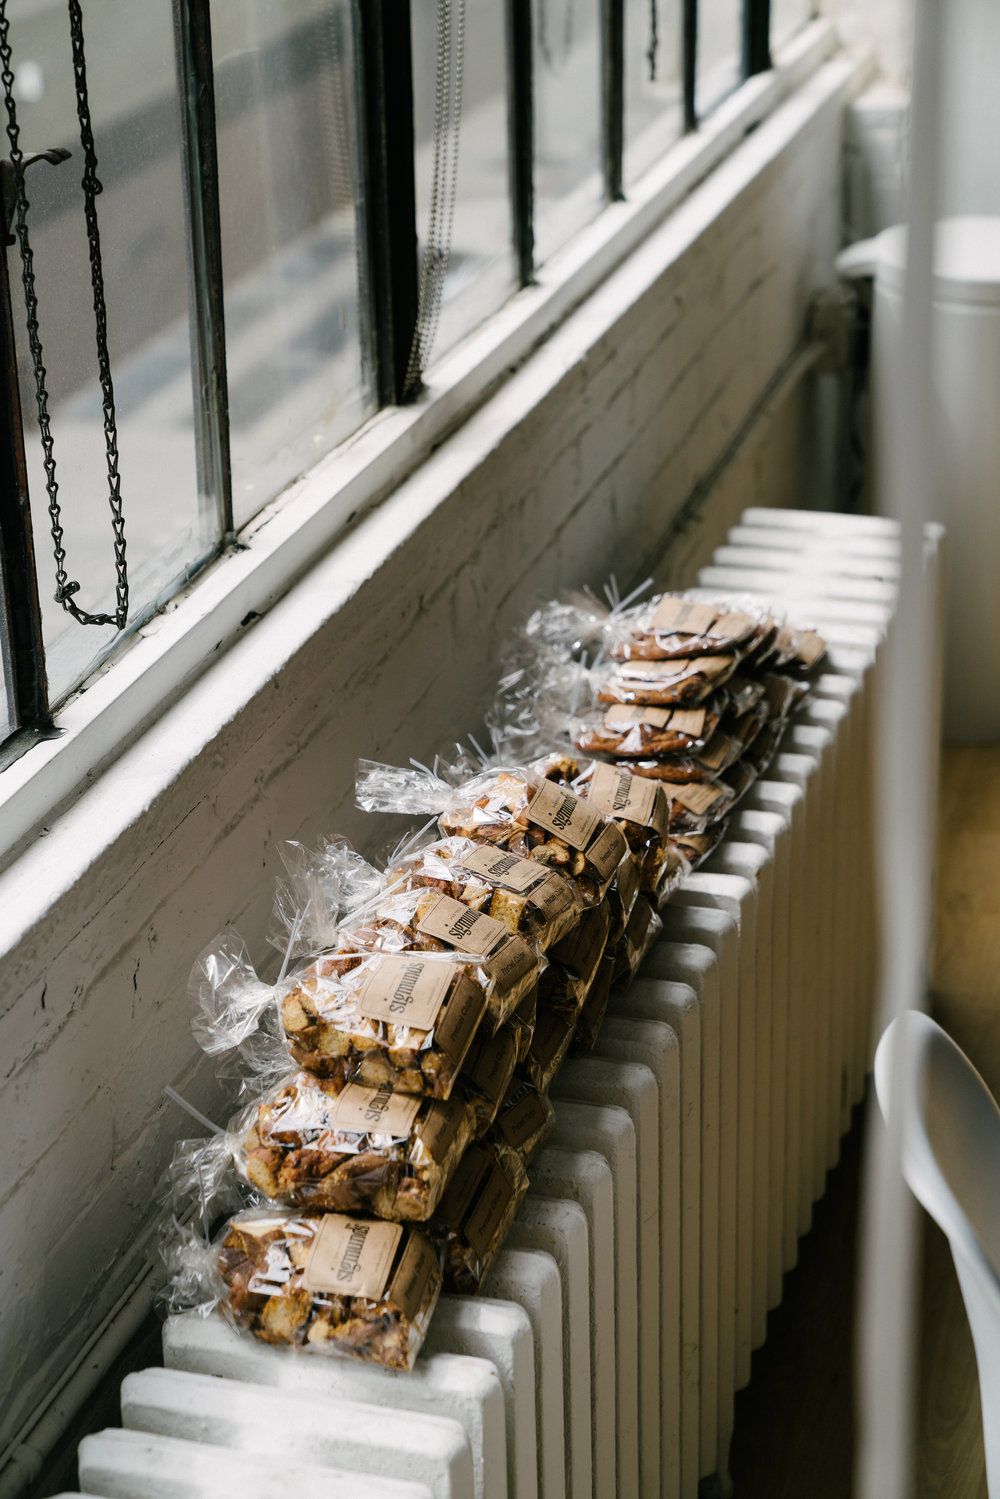 The best favors – pretzel chips and cookies from Sigmund's x Urbanspace Vanderbilt